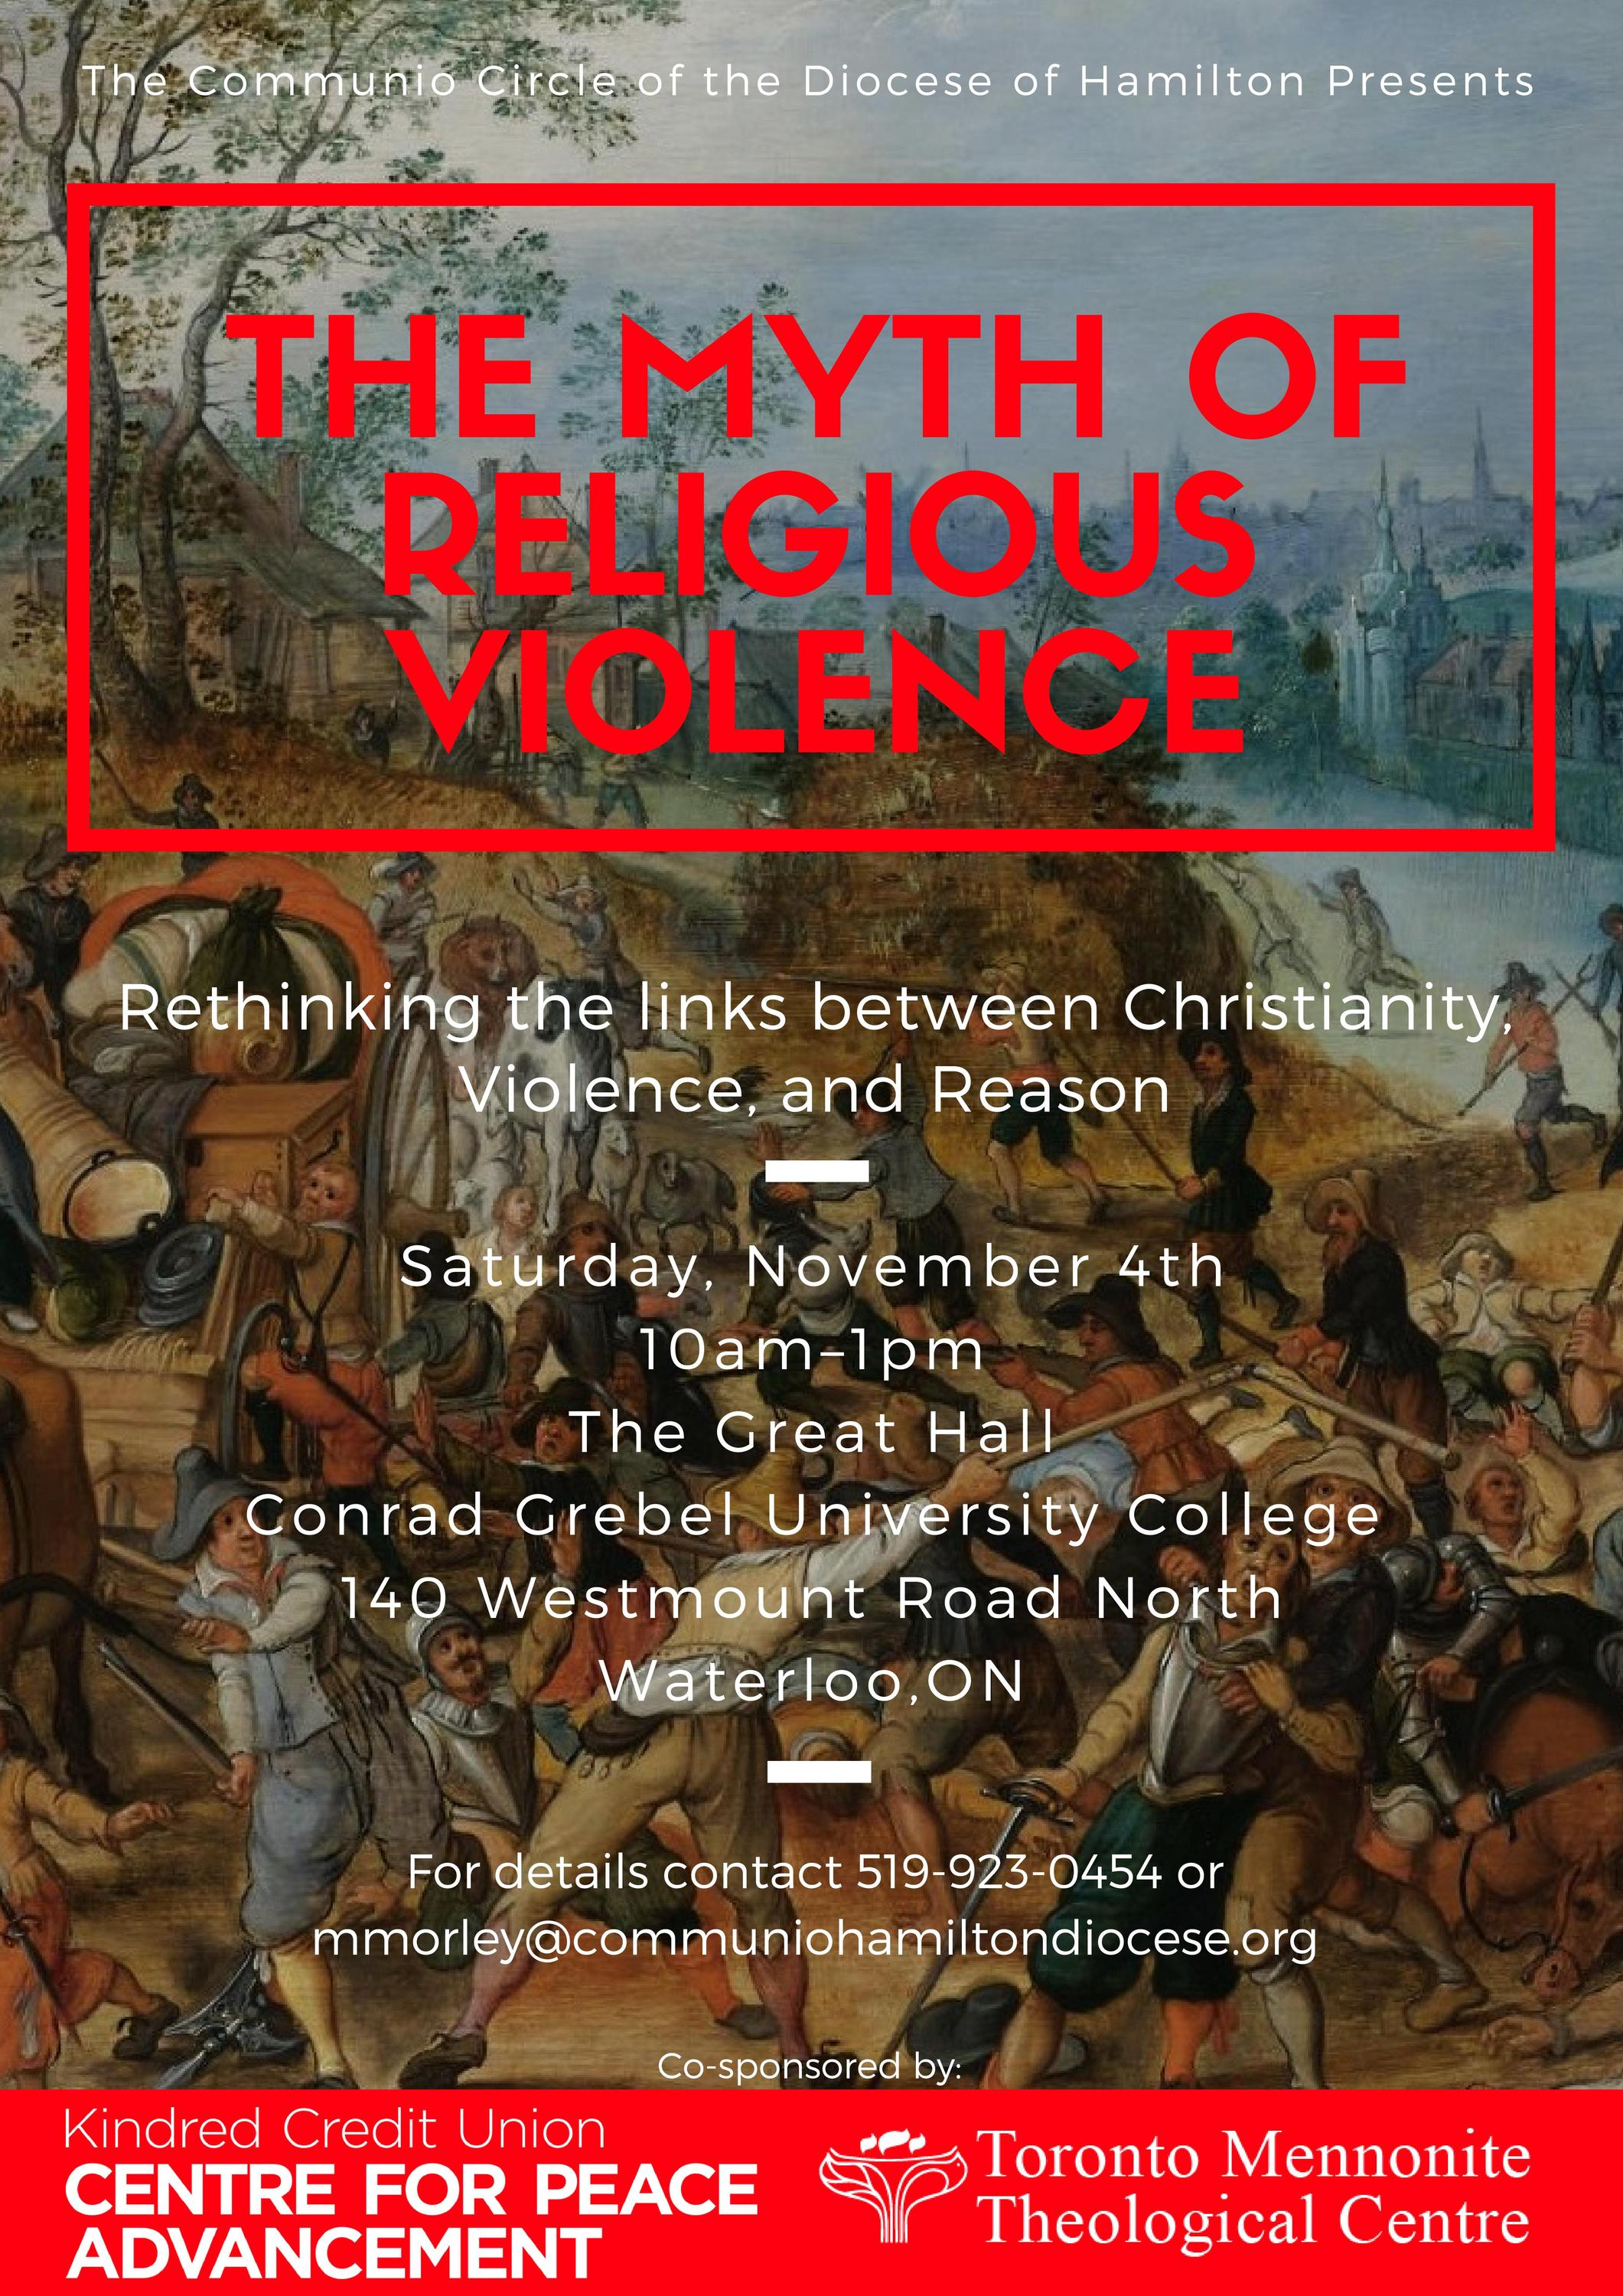 The Myth of Religious Violence publication